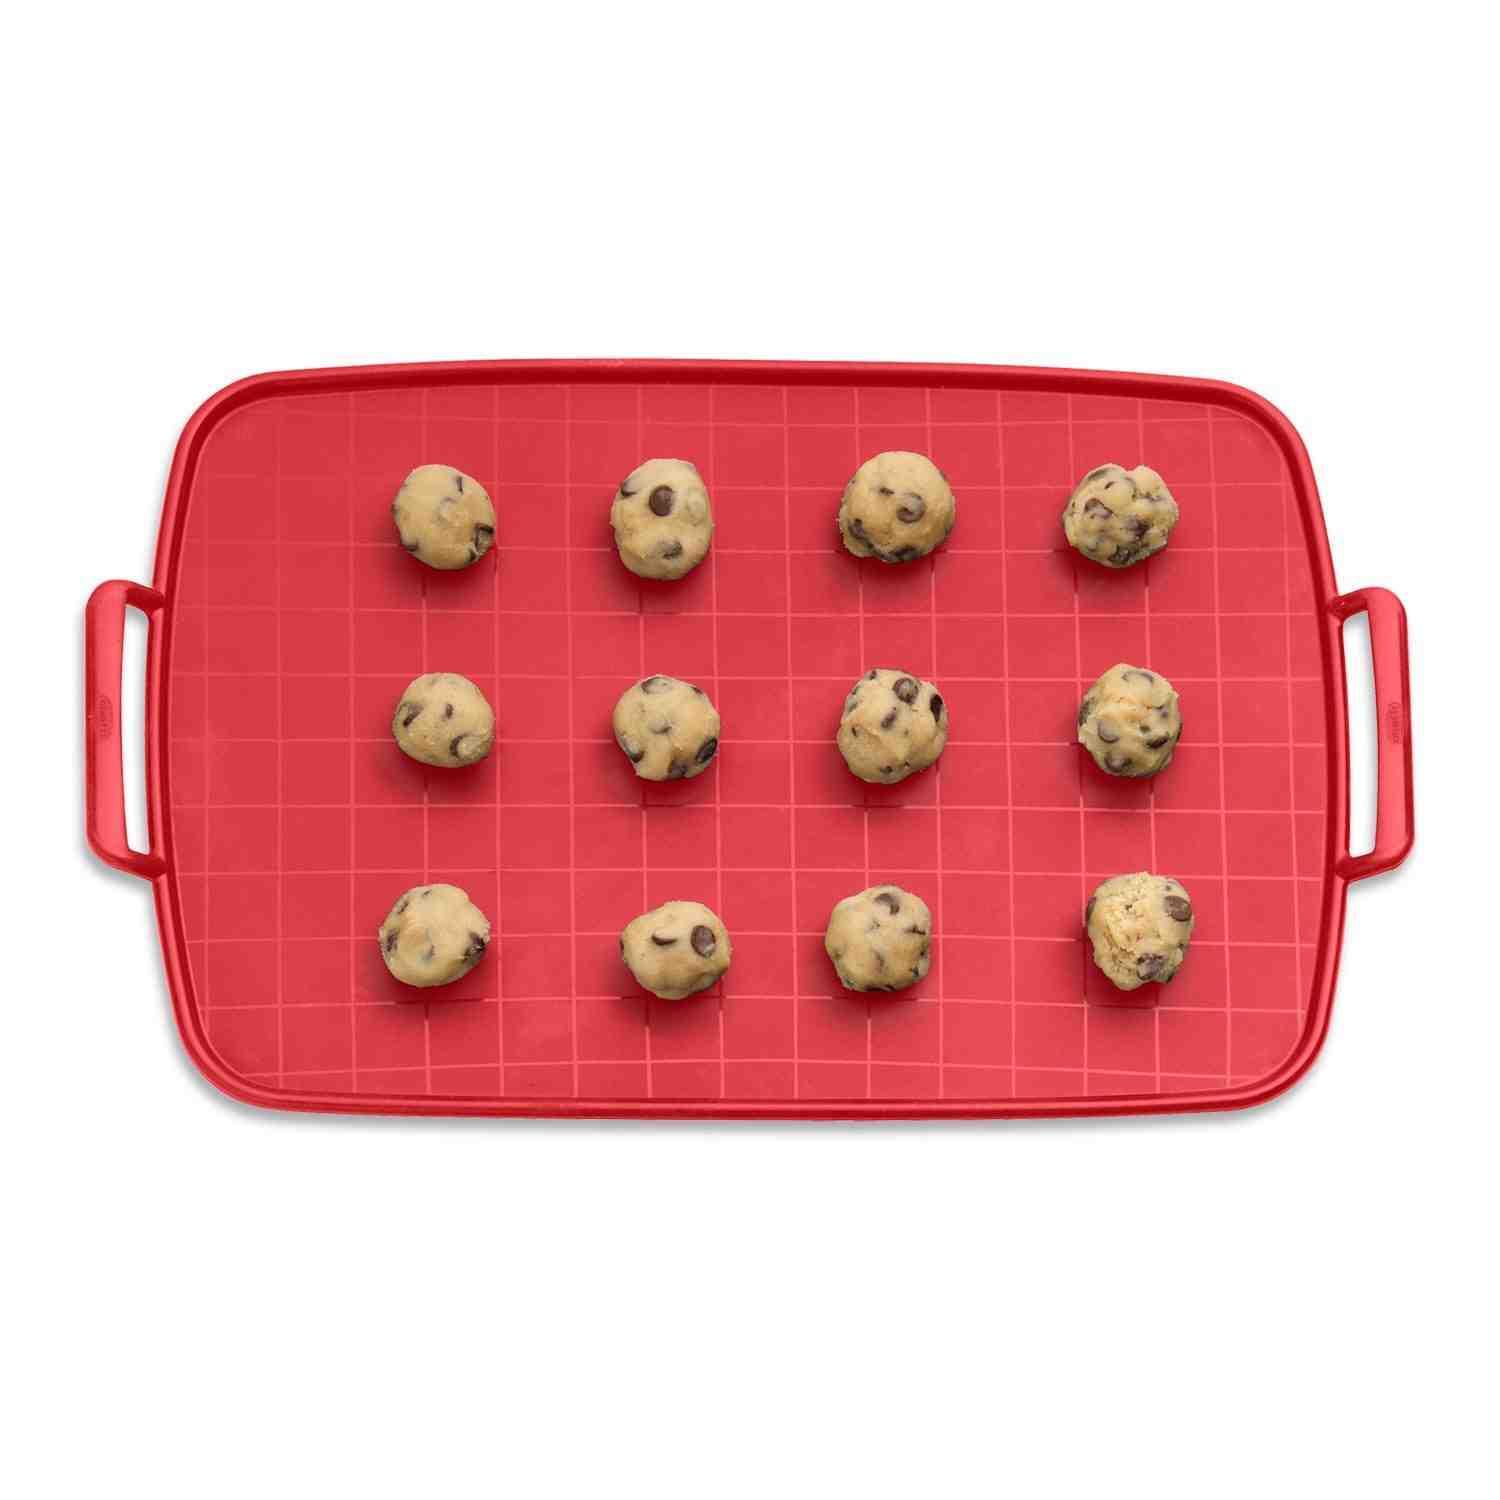 SWEET SHEET 18x13 Silicone Baking Sheet